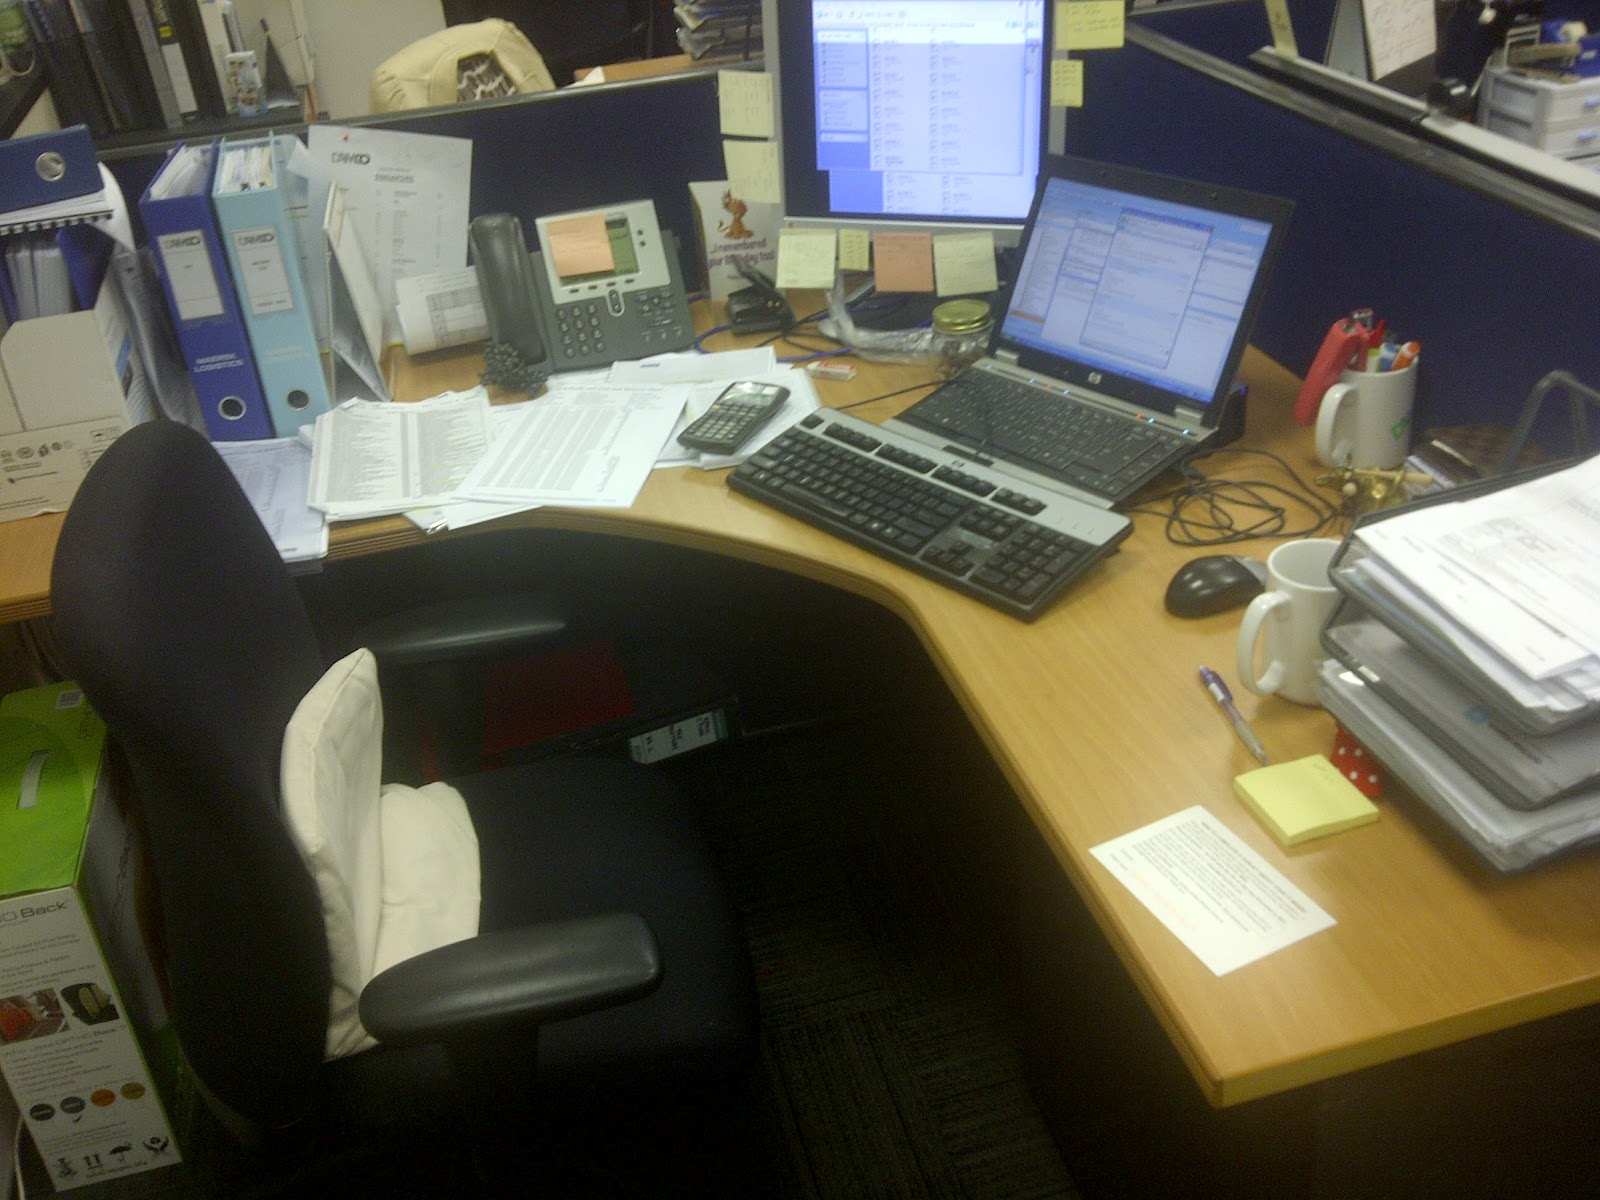 My Office Desk As An Accountant Is Just Hmm...messy With Sticky Notes.